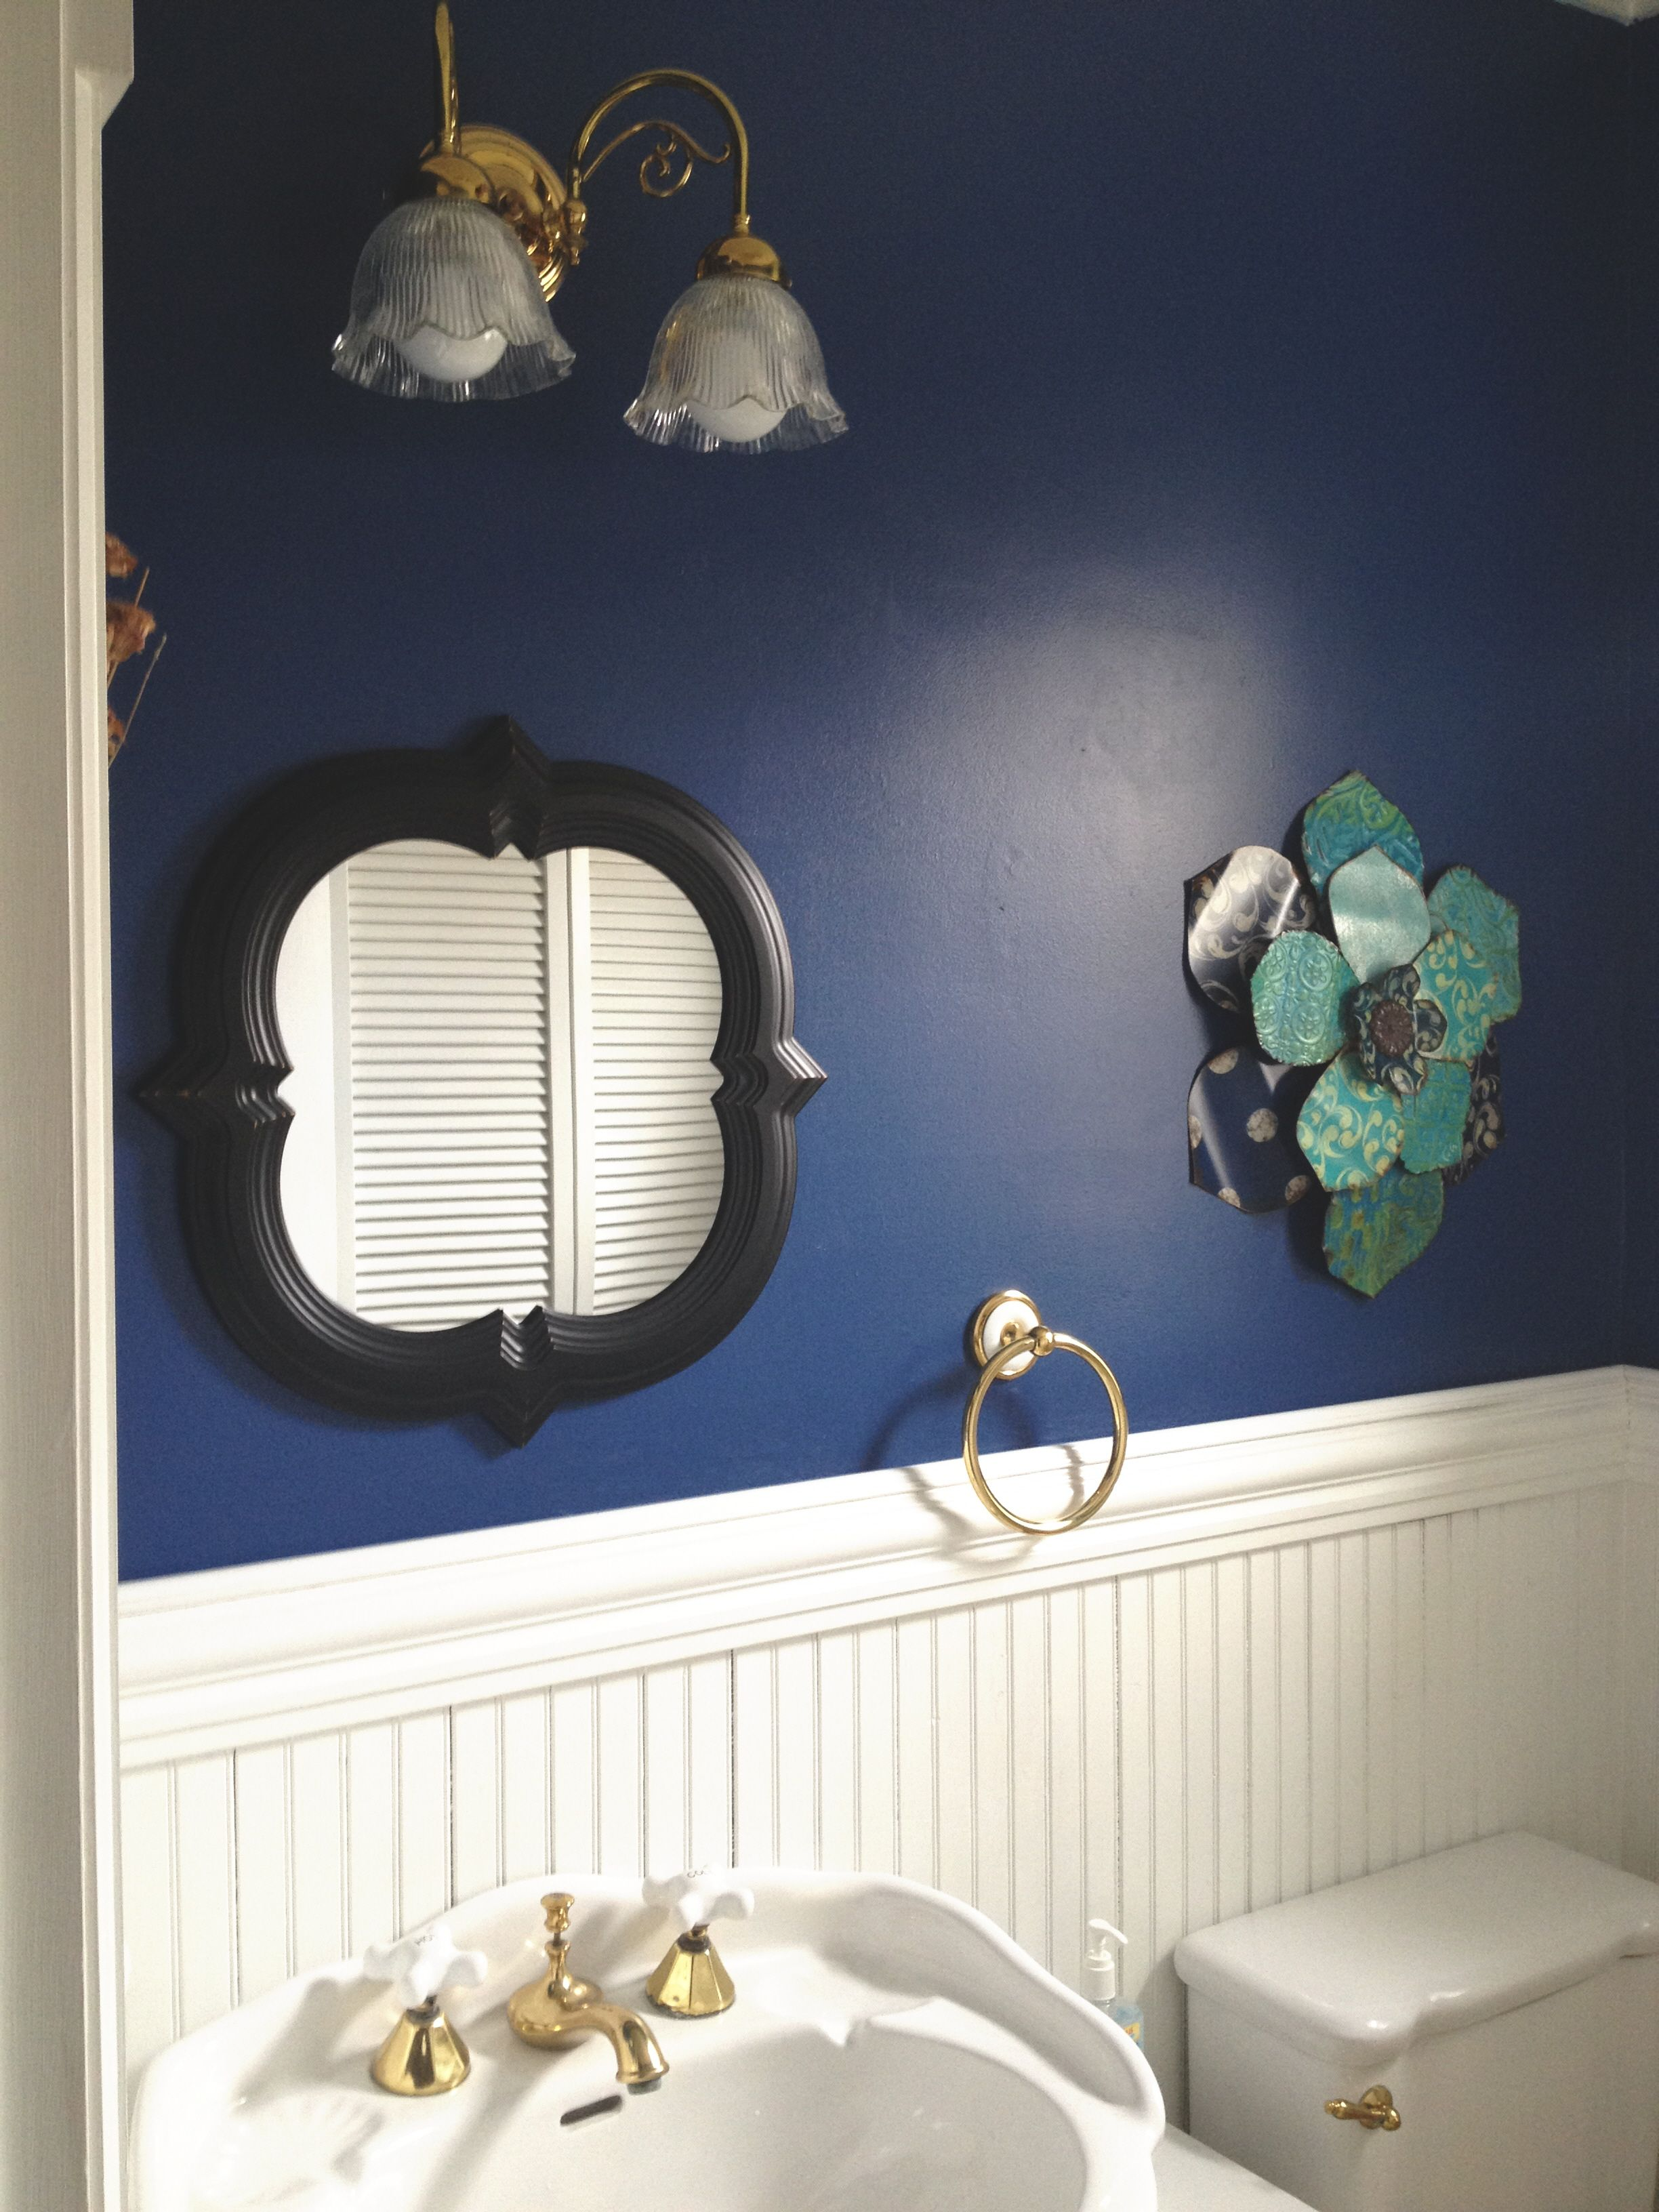 Dark blue and white bathroom - Dark Blue Walls With White Wainscoting In Bathroom Very Nice Contrast